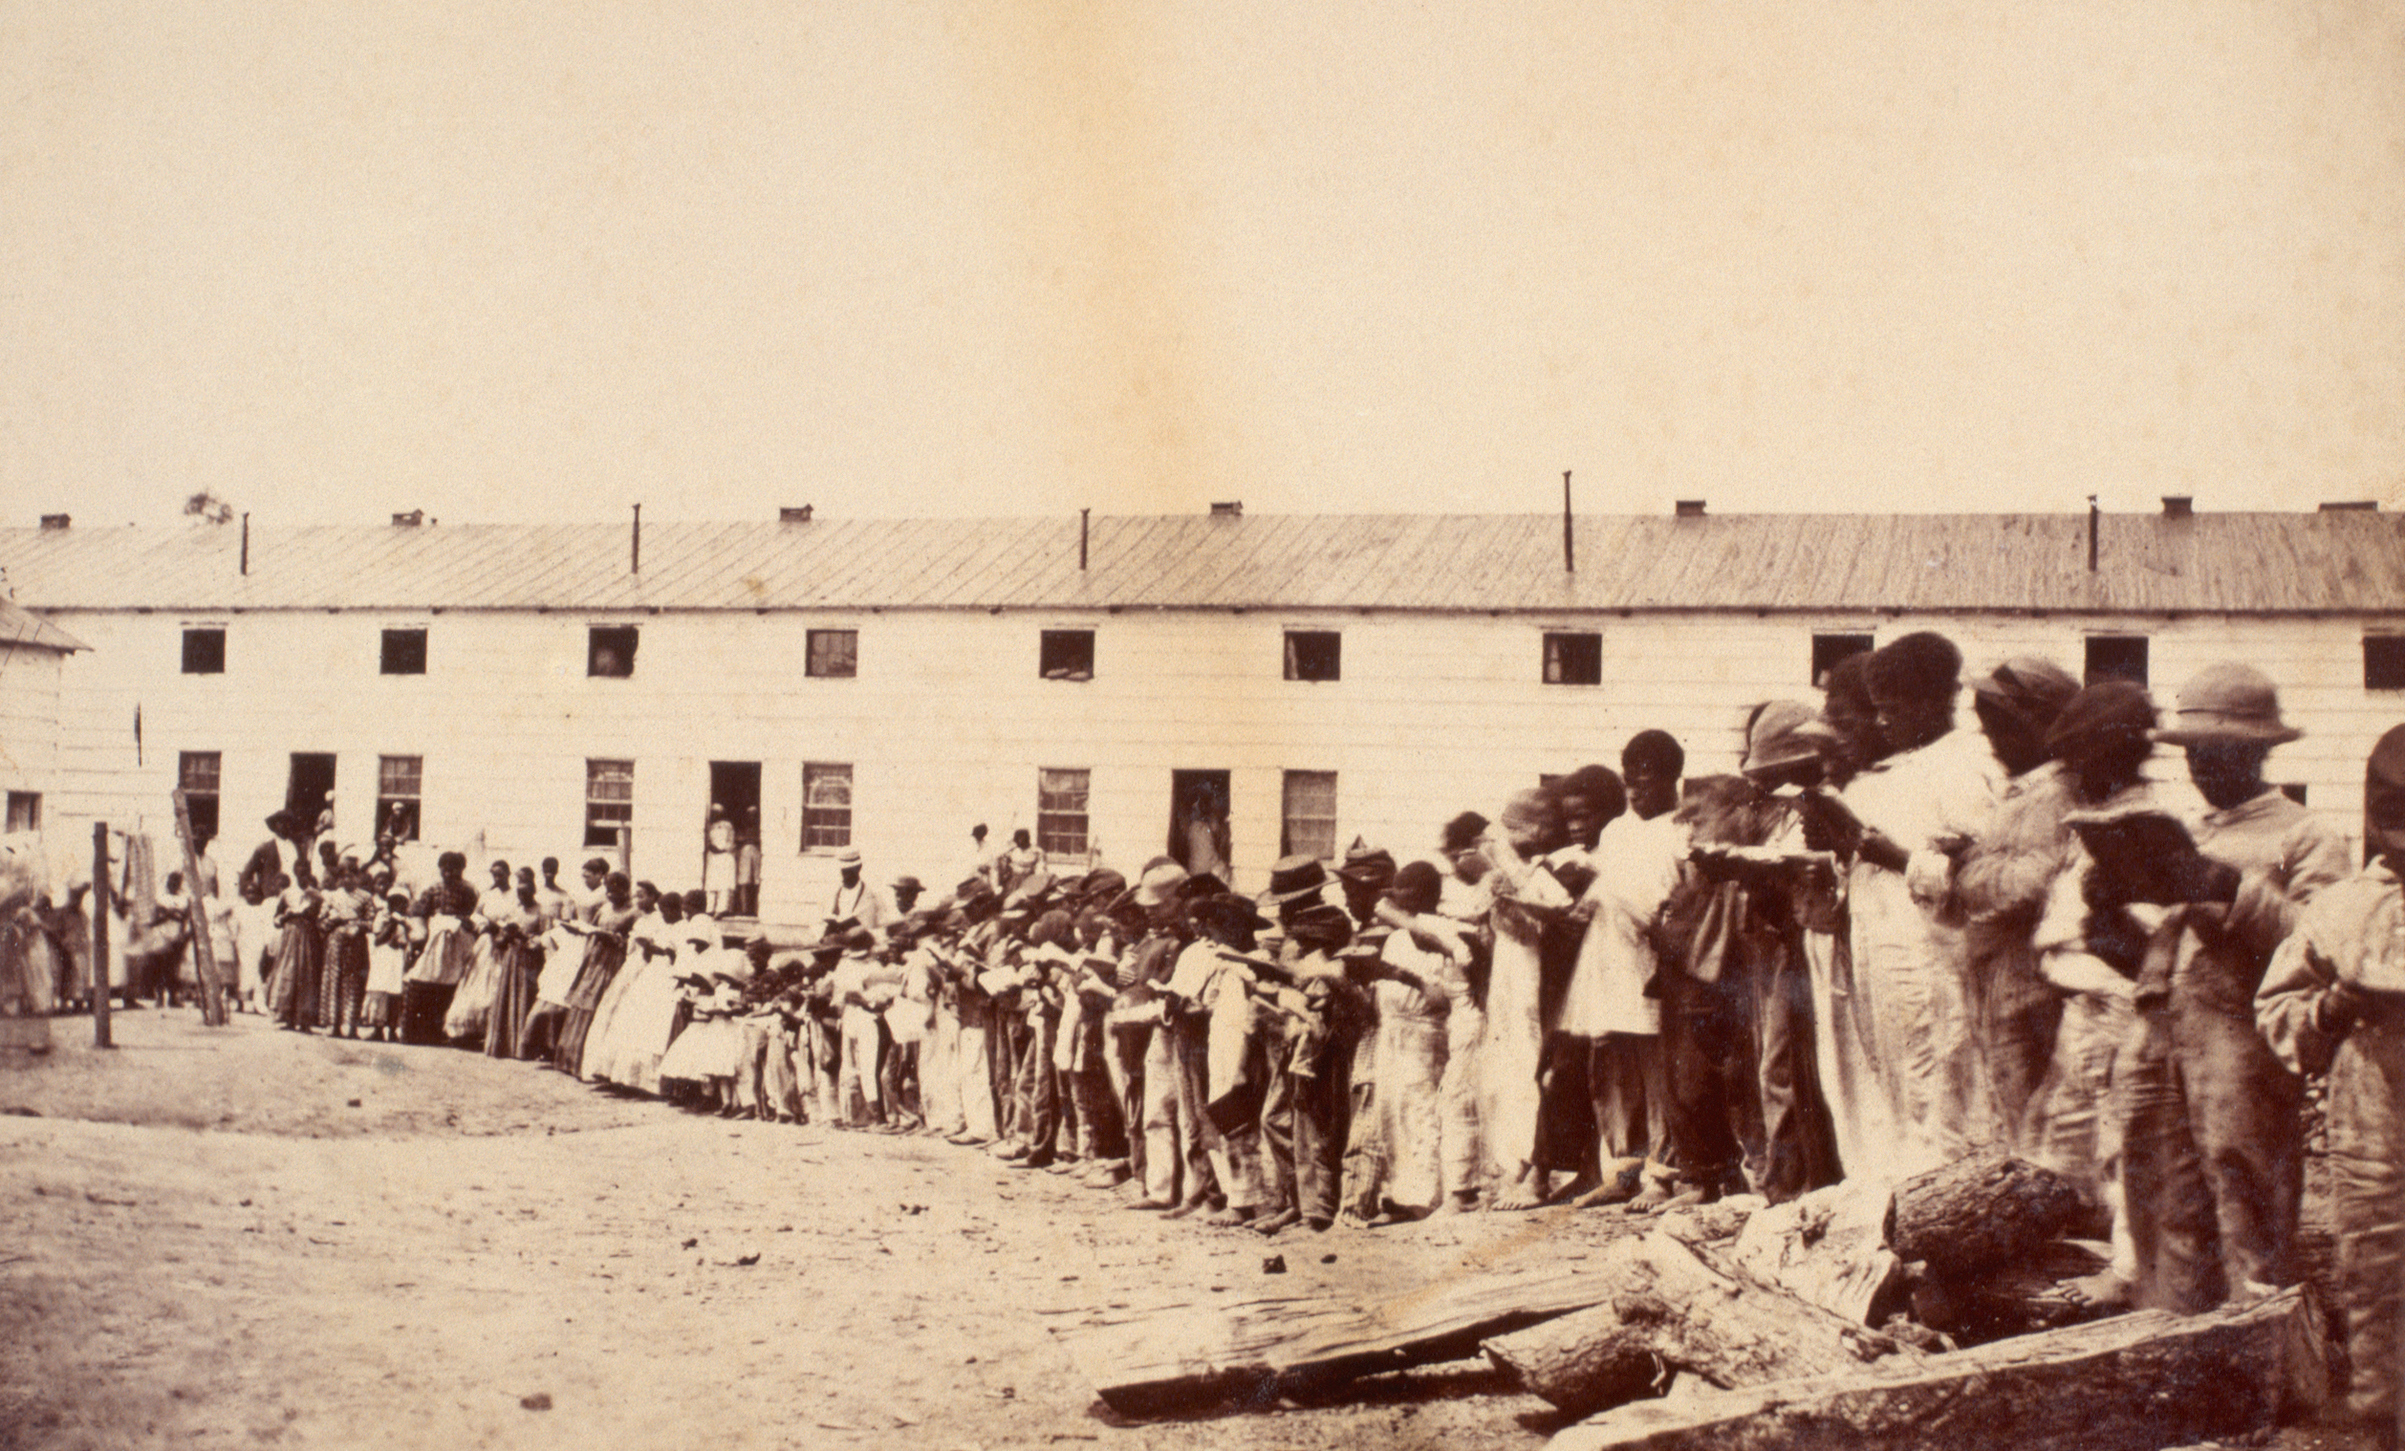 As slaves were freed after the Emancipation Proclamation, the United States government established  Freedmen's Villages  to house, clothe, and educate freed slaves. Ca. 1863-1865.